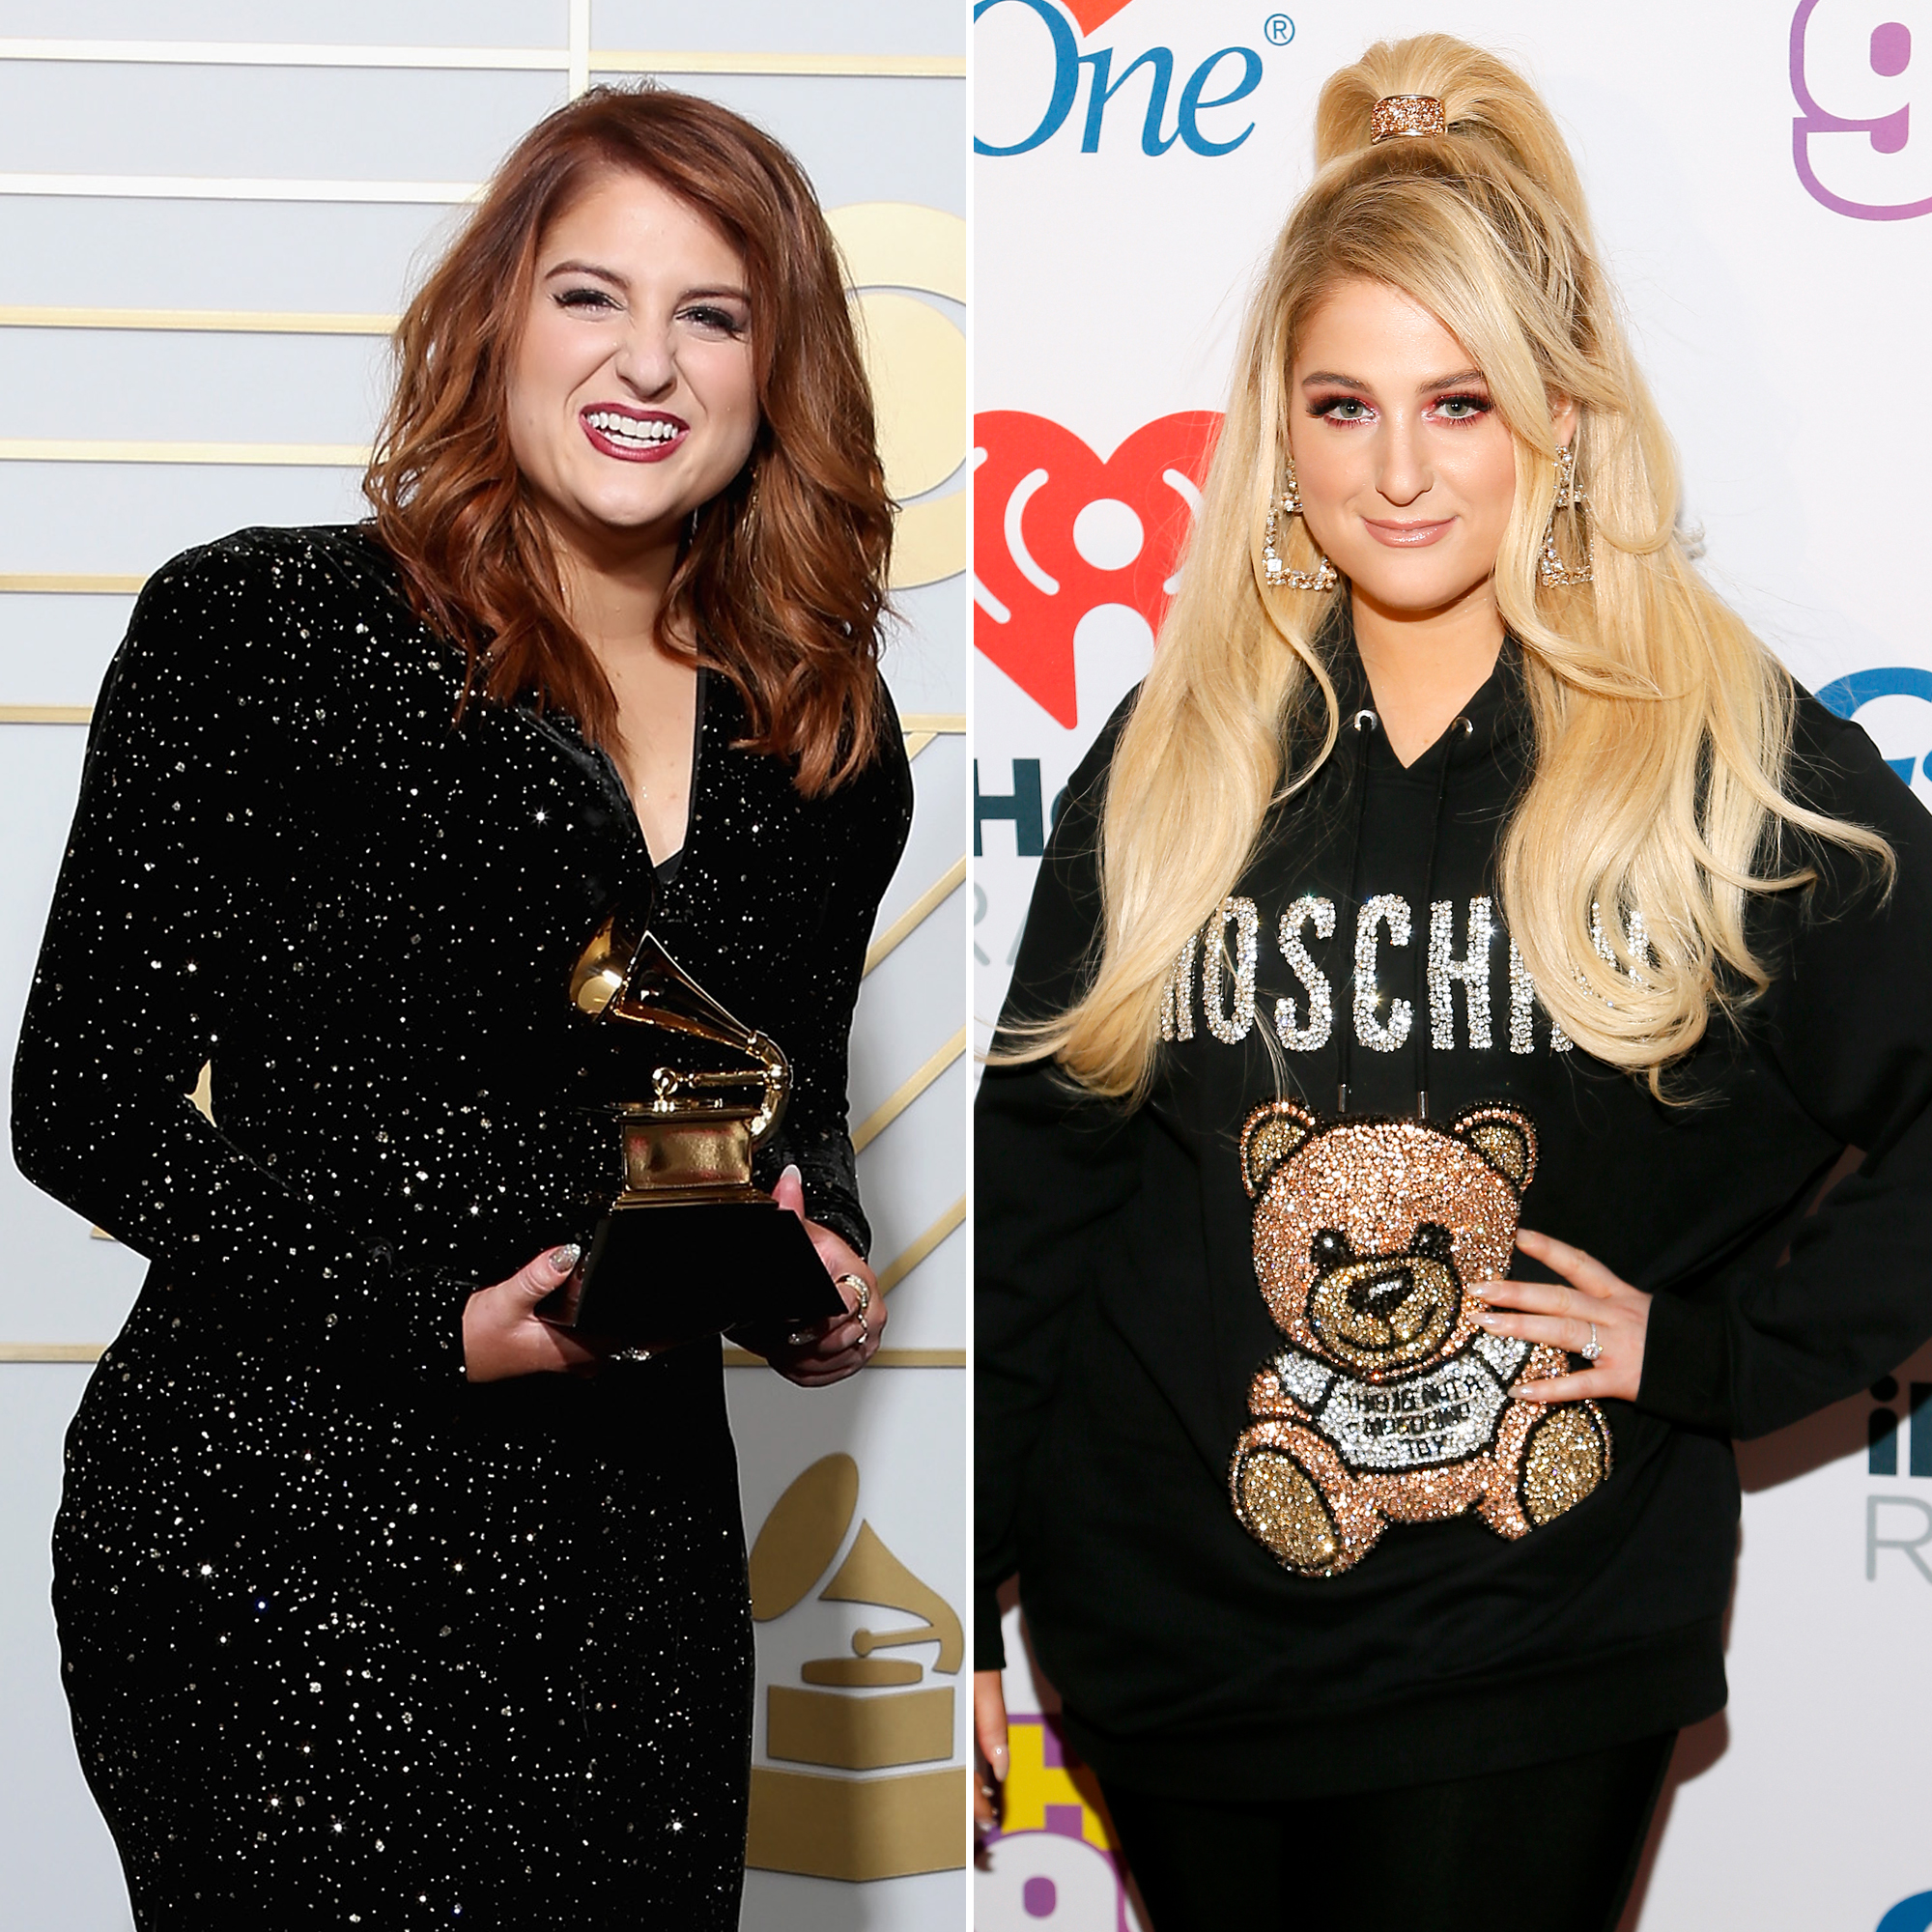 Best New Artist Grammy Winners Where Are They Now - Who She Beat: Courtney Barnett, James Bay, Sam Hunt, Tori Kelly Where Is She Now: Months after she won Best New Artist, Trainor released her second studio album, Thank You , in May 2016. On her 25th birthday in December 2018, the singer married Spy Kids actor Daryl Sabara.